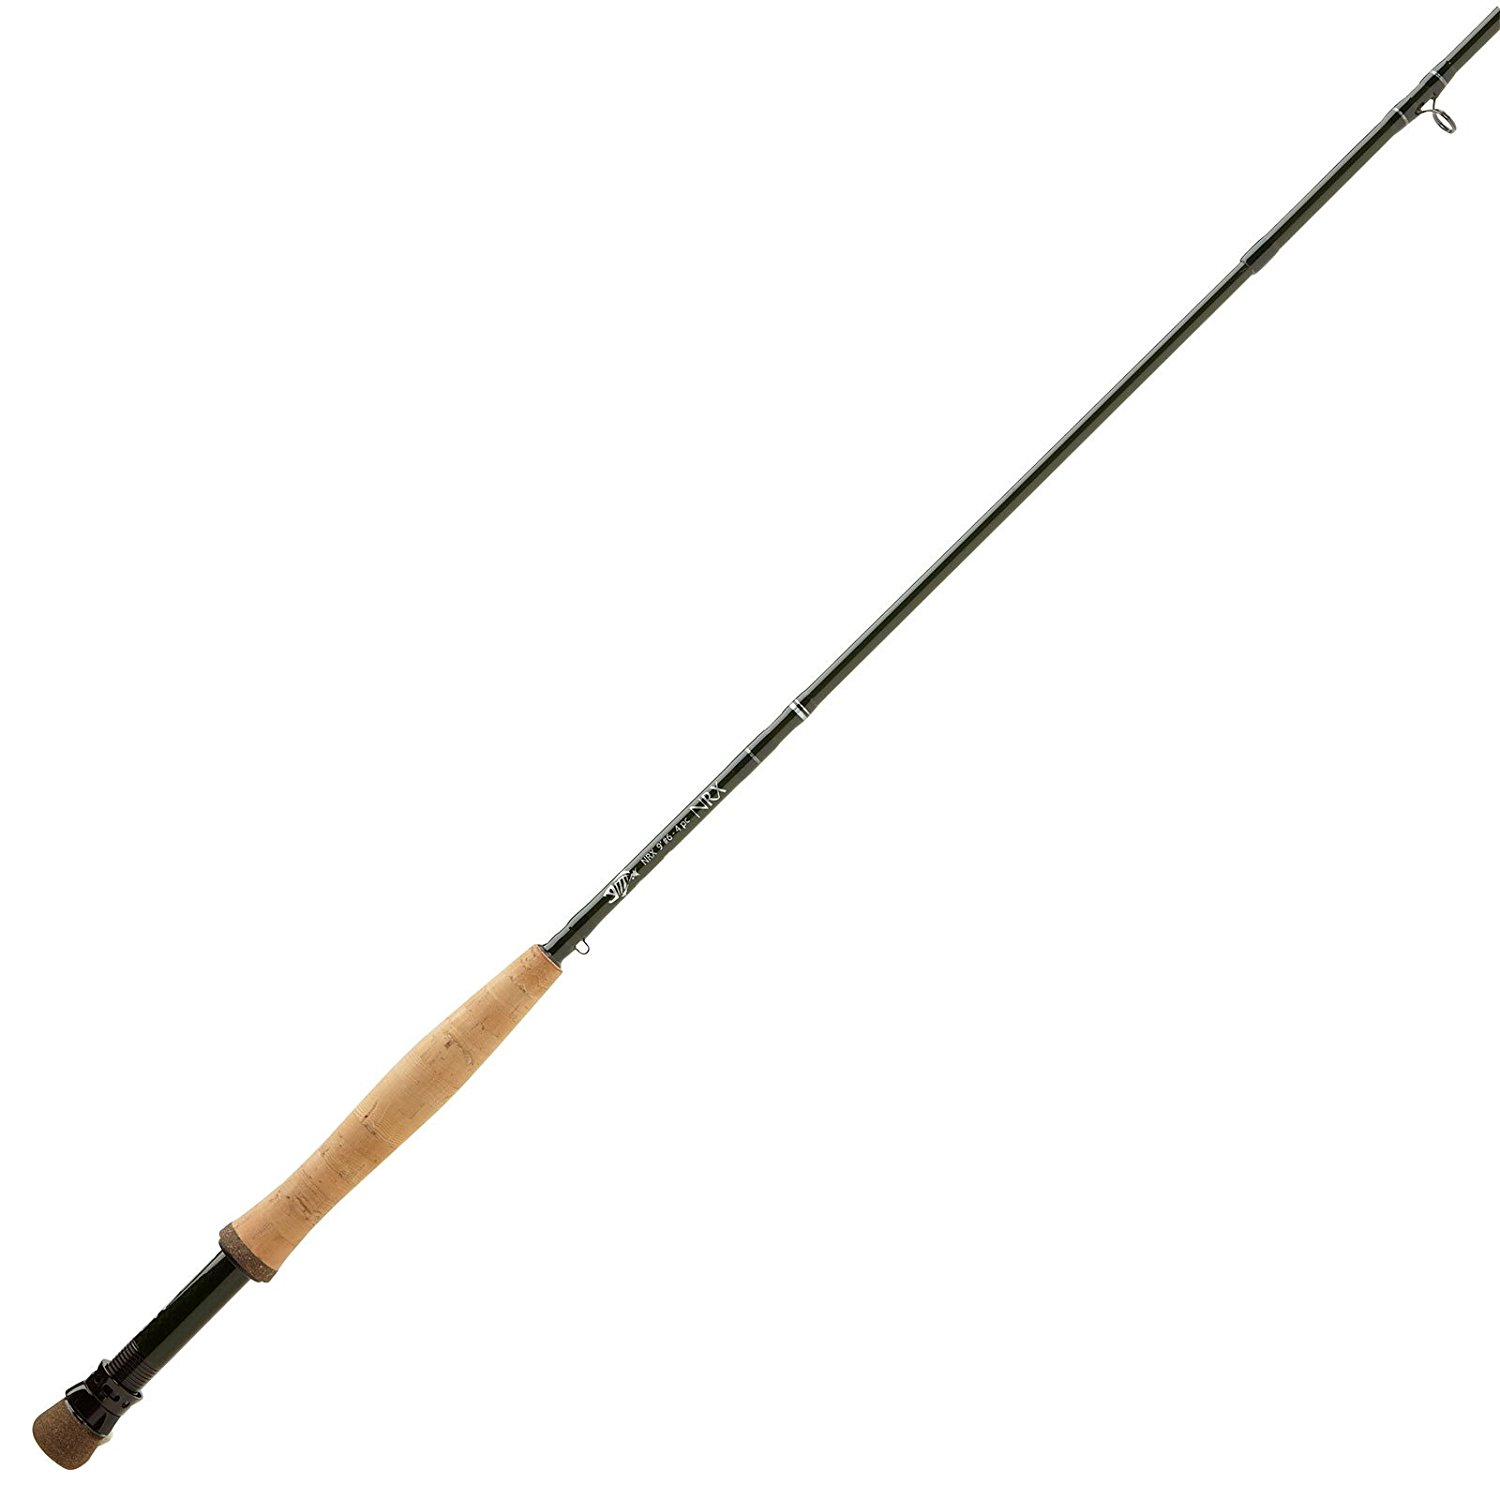 G loomis nrx trout fly fishing rods outdoorsmenreviews for Best fly fishing rods